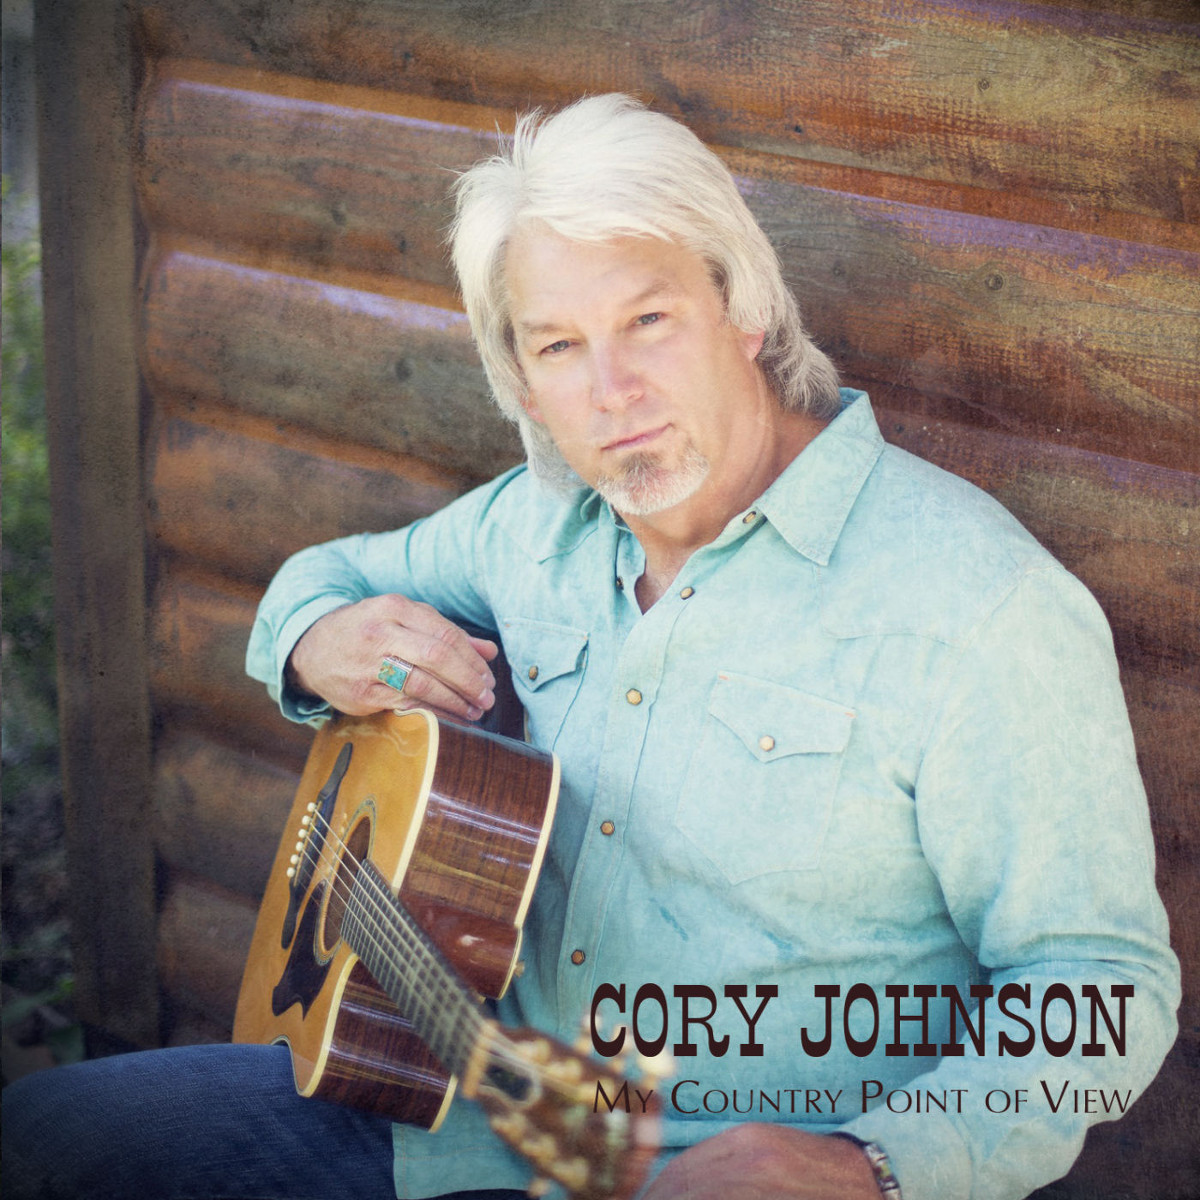 Cory Johnson - My Country Point of View